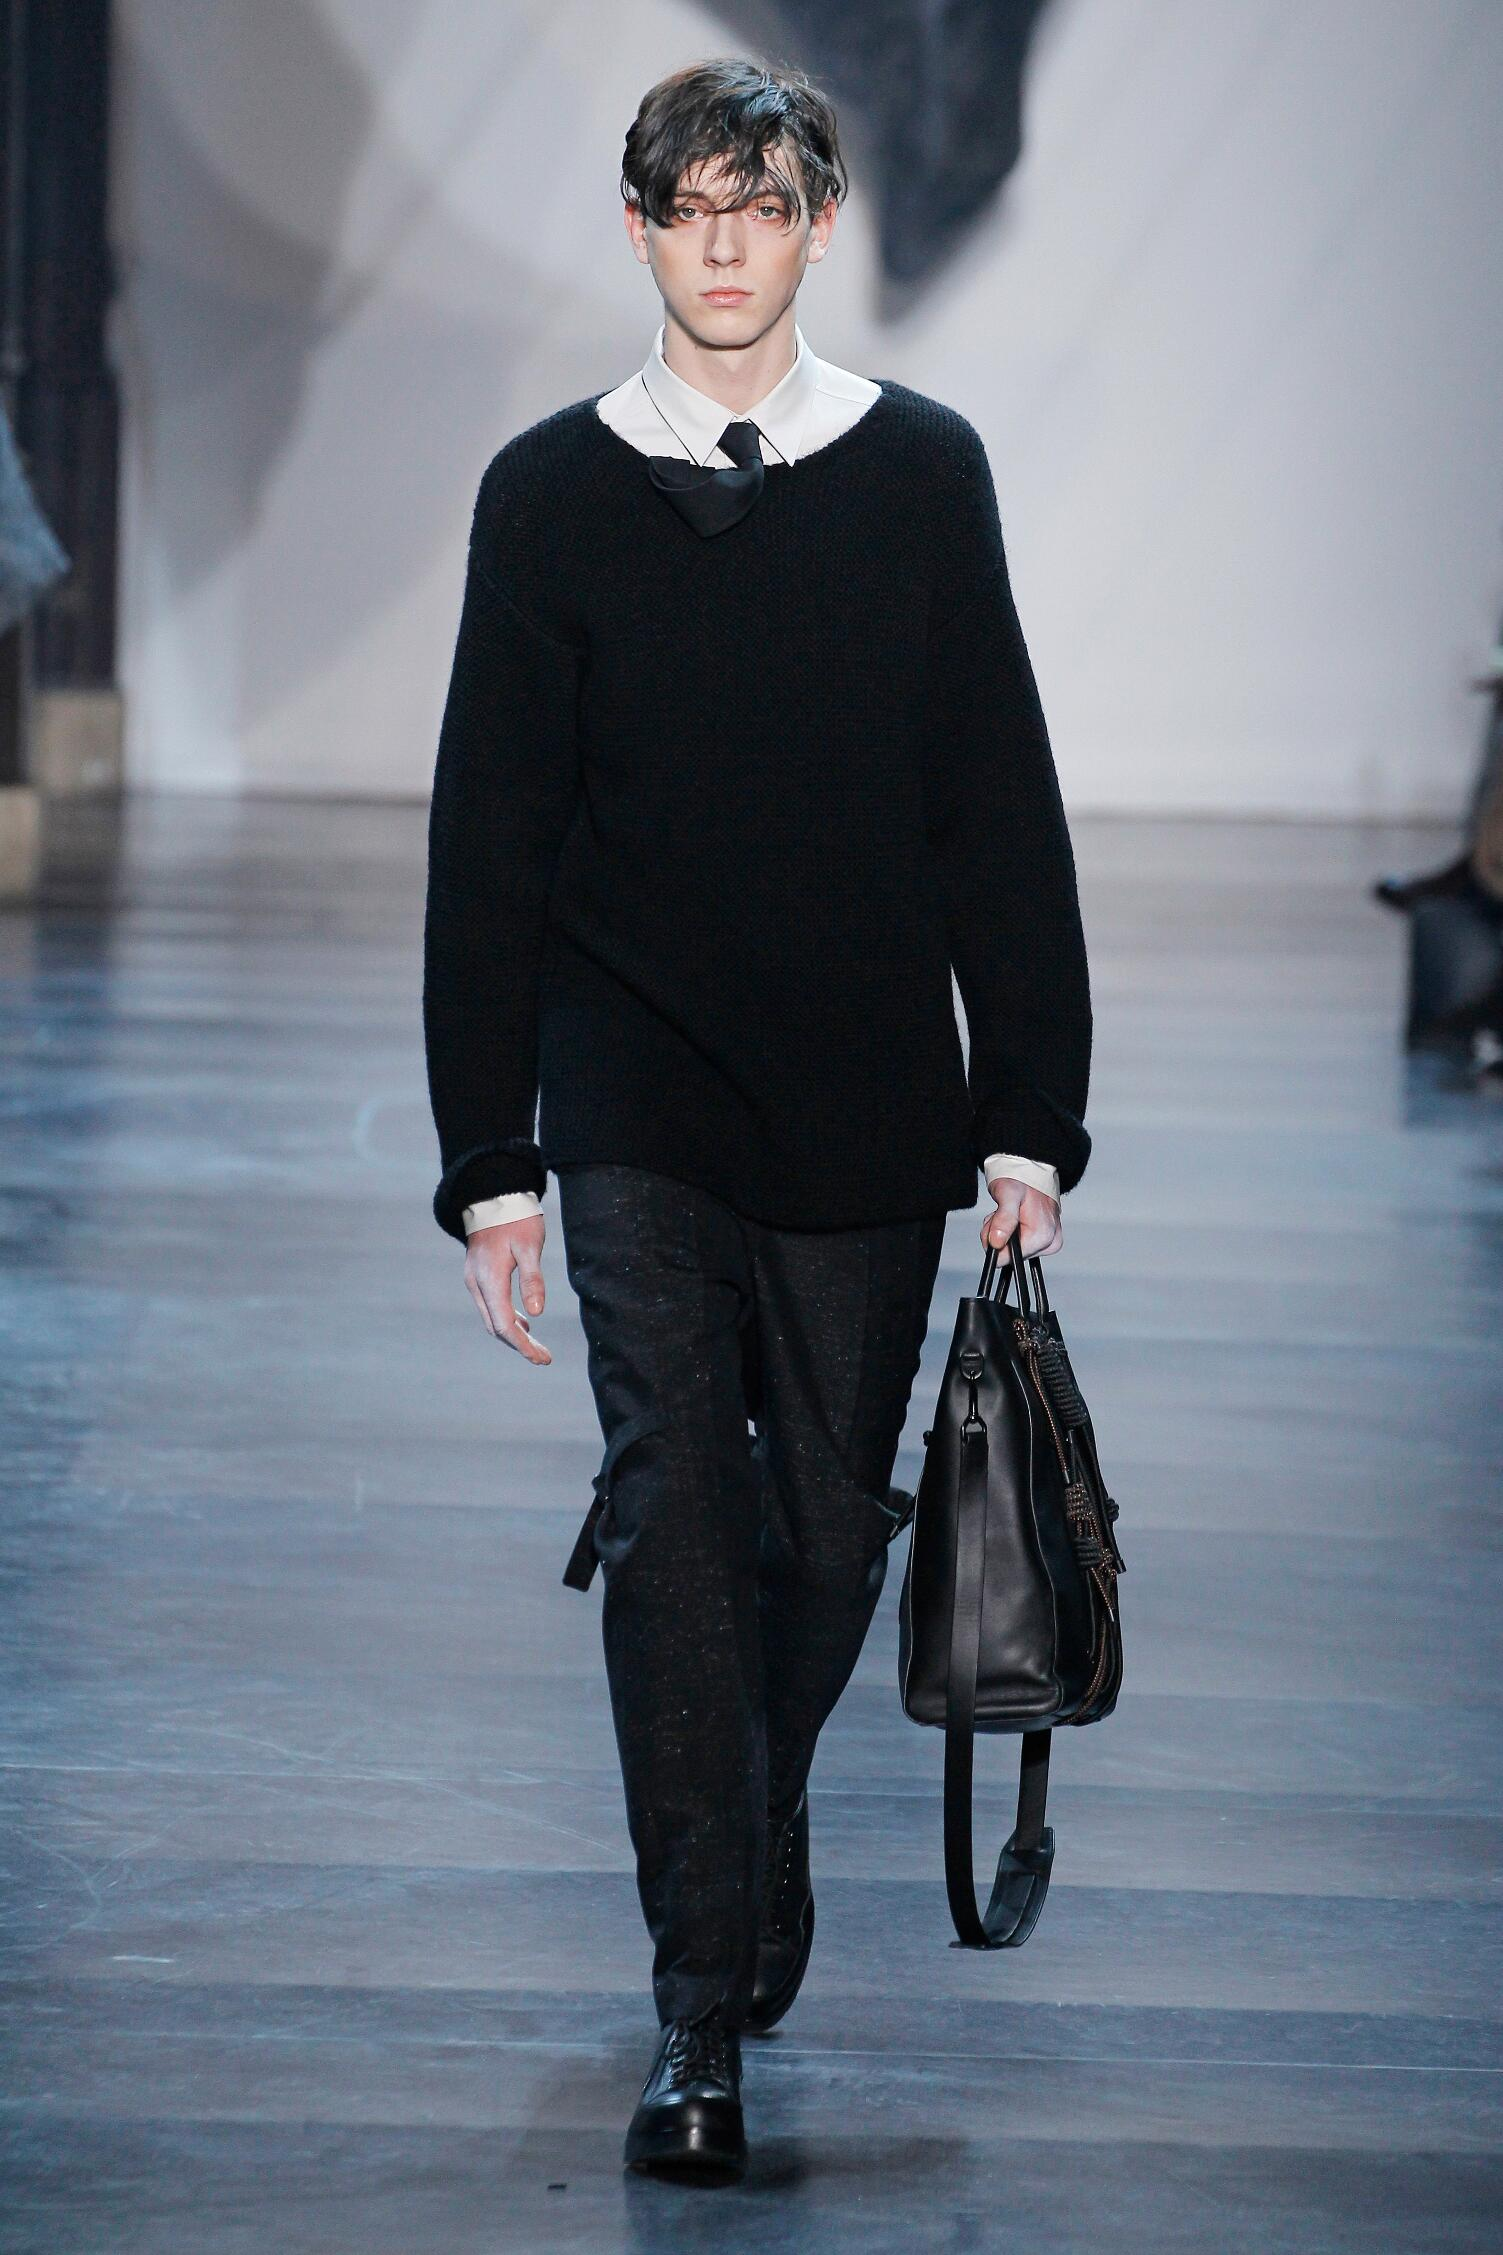 Winter 2015 Fashion Show 3.1 Phillip Lim Collection